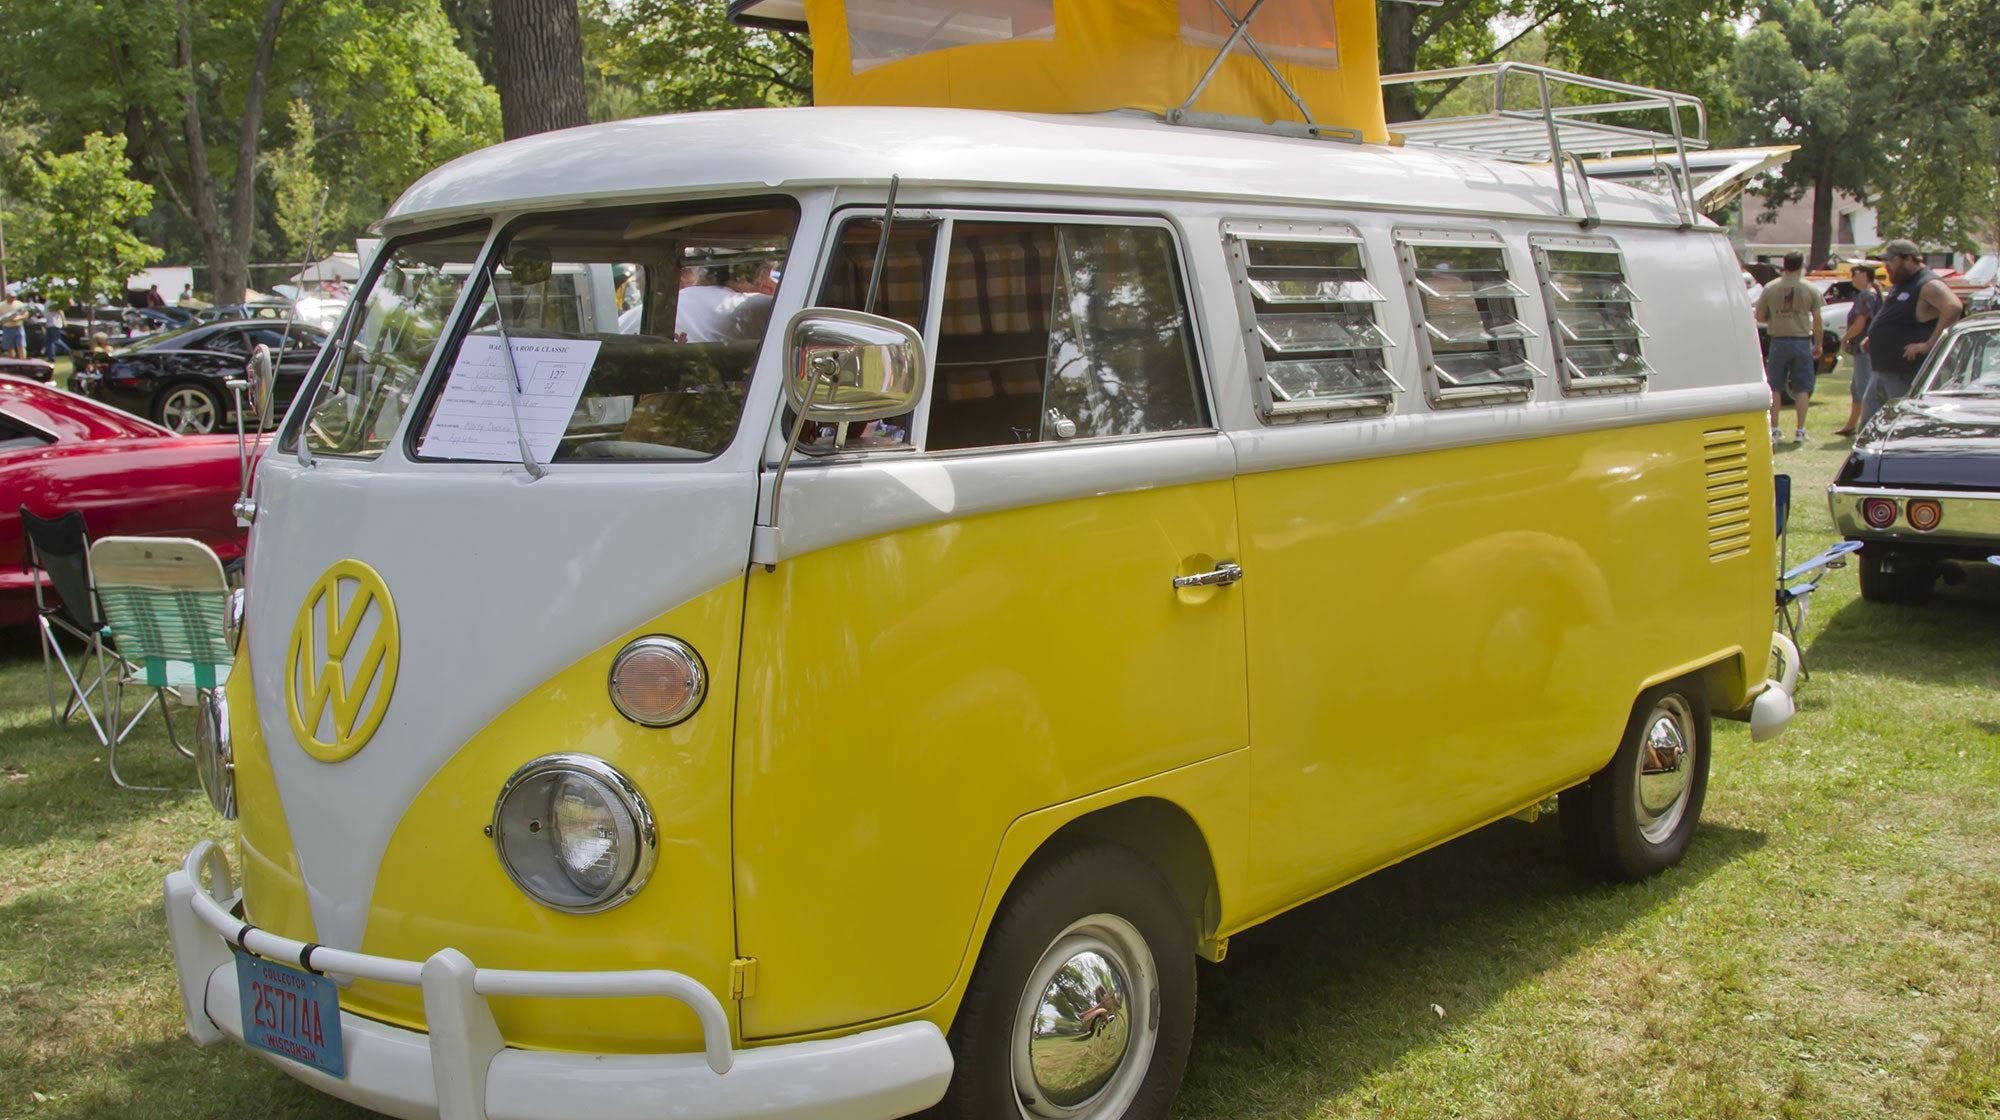 7 Things to Know When Purchasing a Vintage Camper